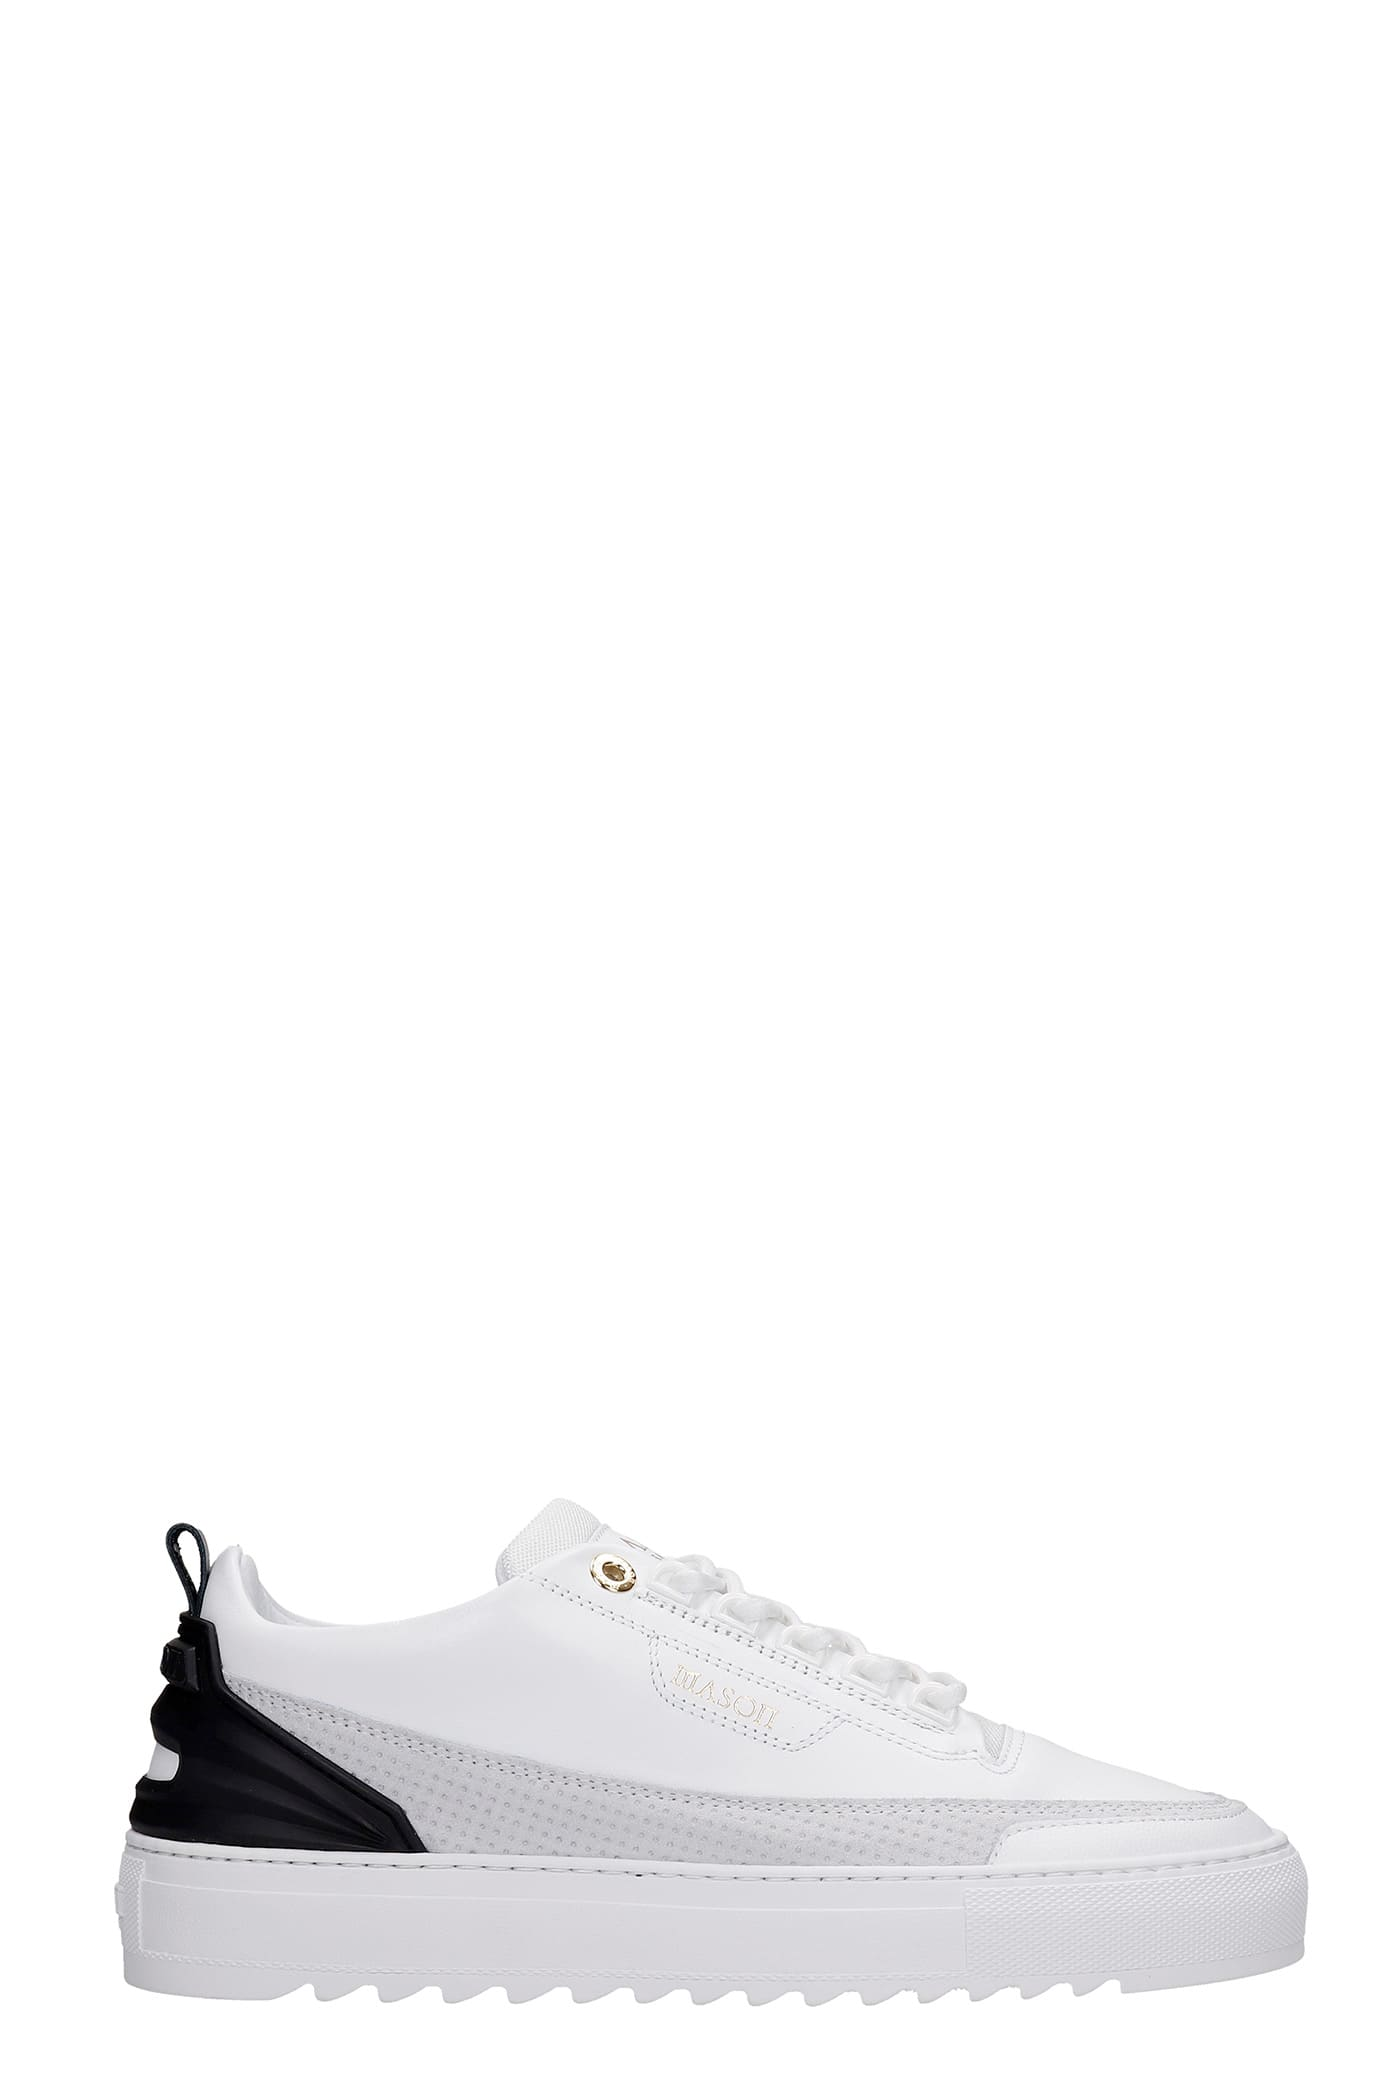 Firenze Sneakers In White Leather